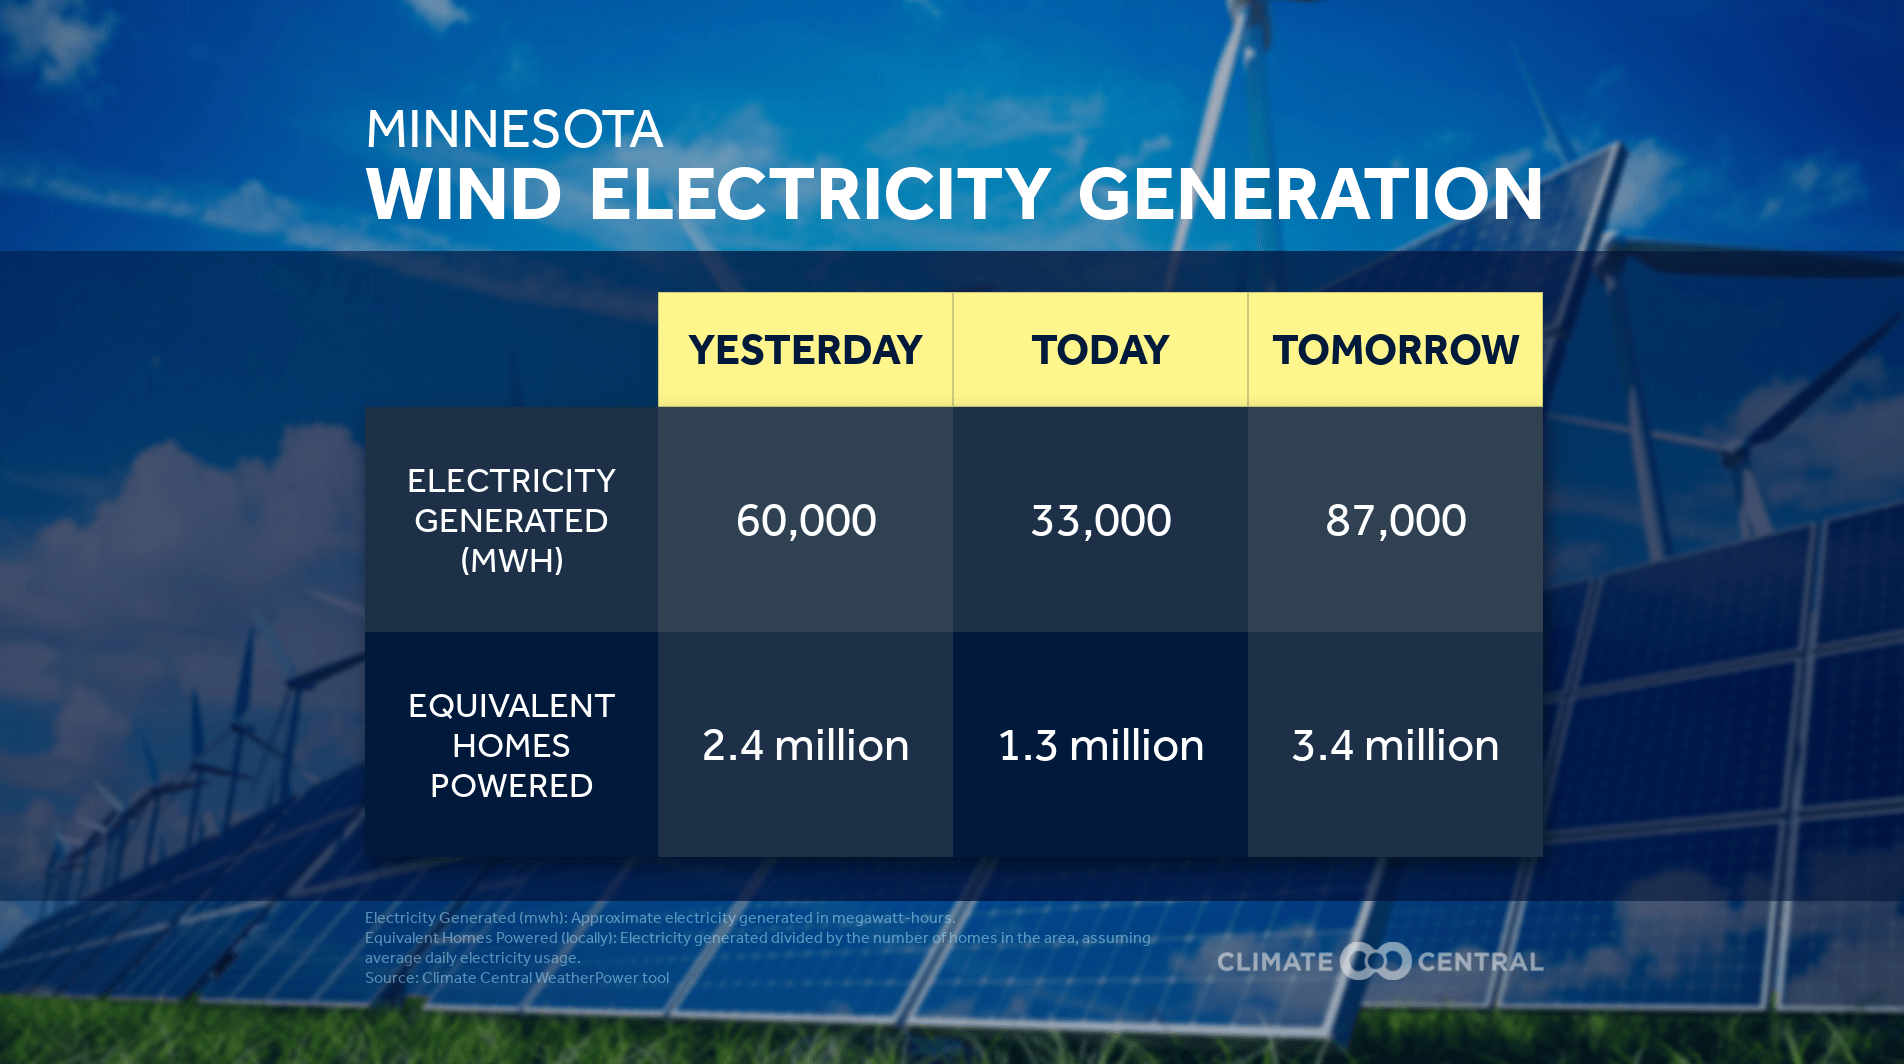 Wind power production